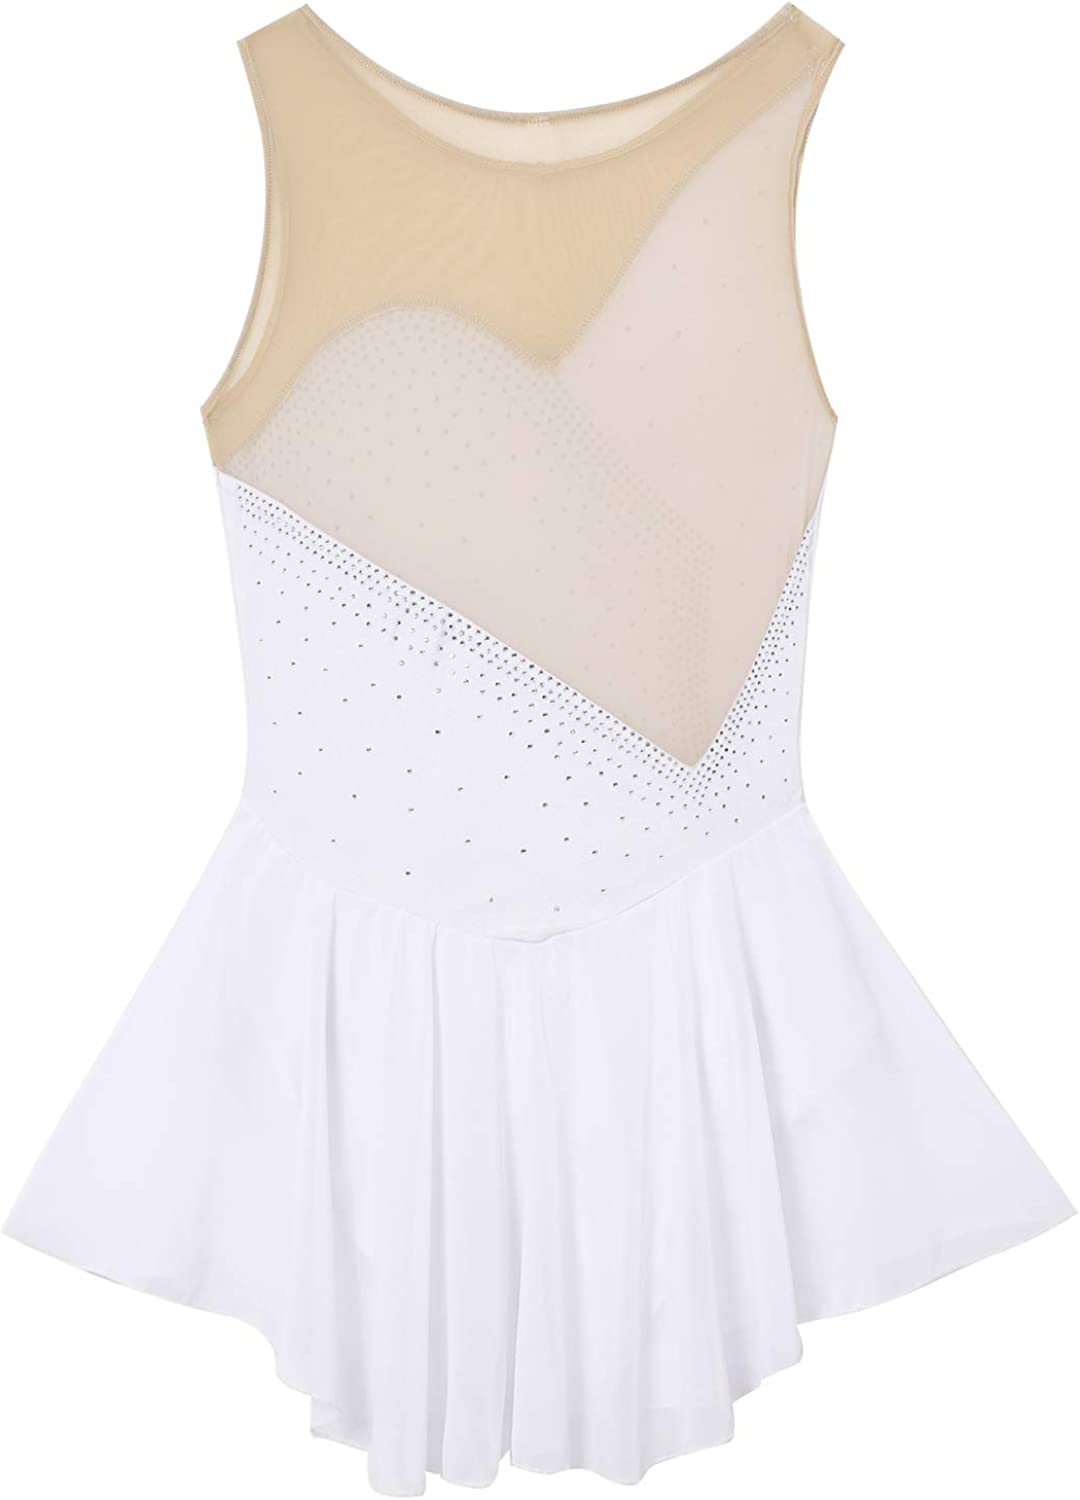 iixpin Womens Mesh Spliced Bodice Figure Ice Skating Roller Skating Ballet Dance Leotard Chiffon Dress